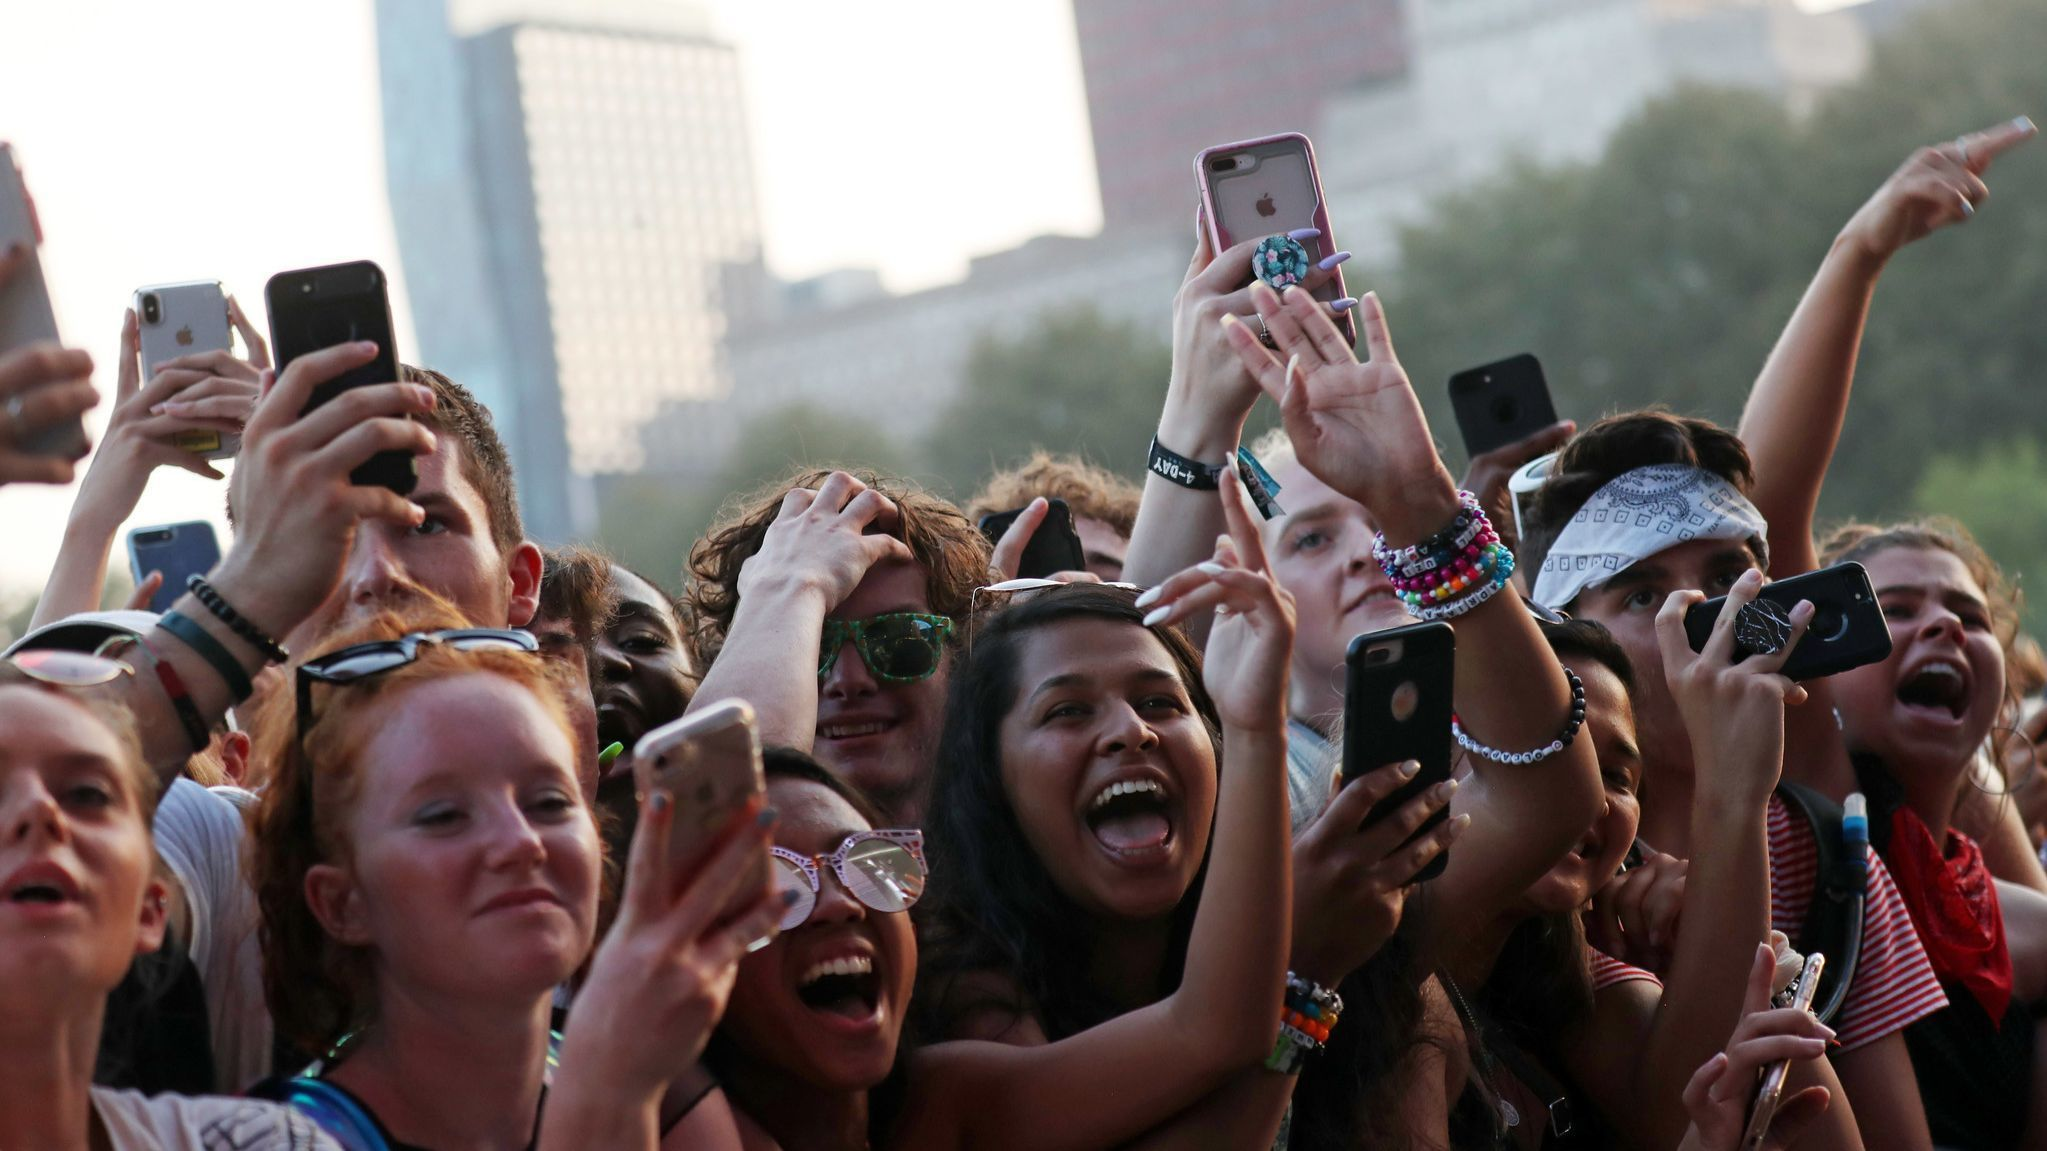 Saturday Lollapalooza tickets sell out (but there are still plenty of options)